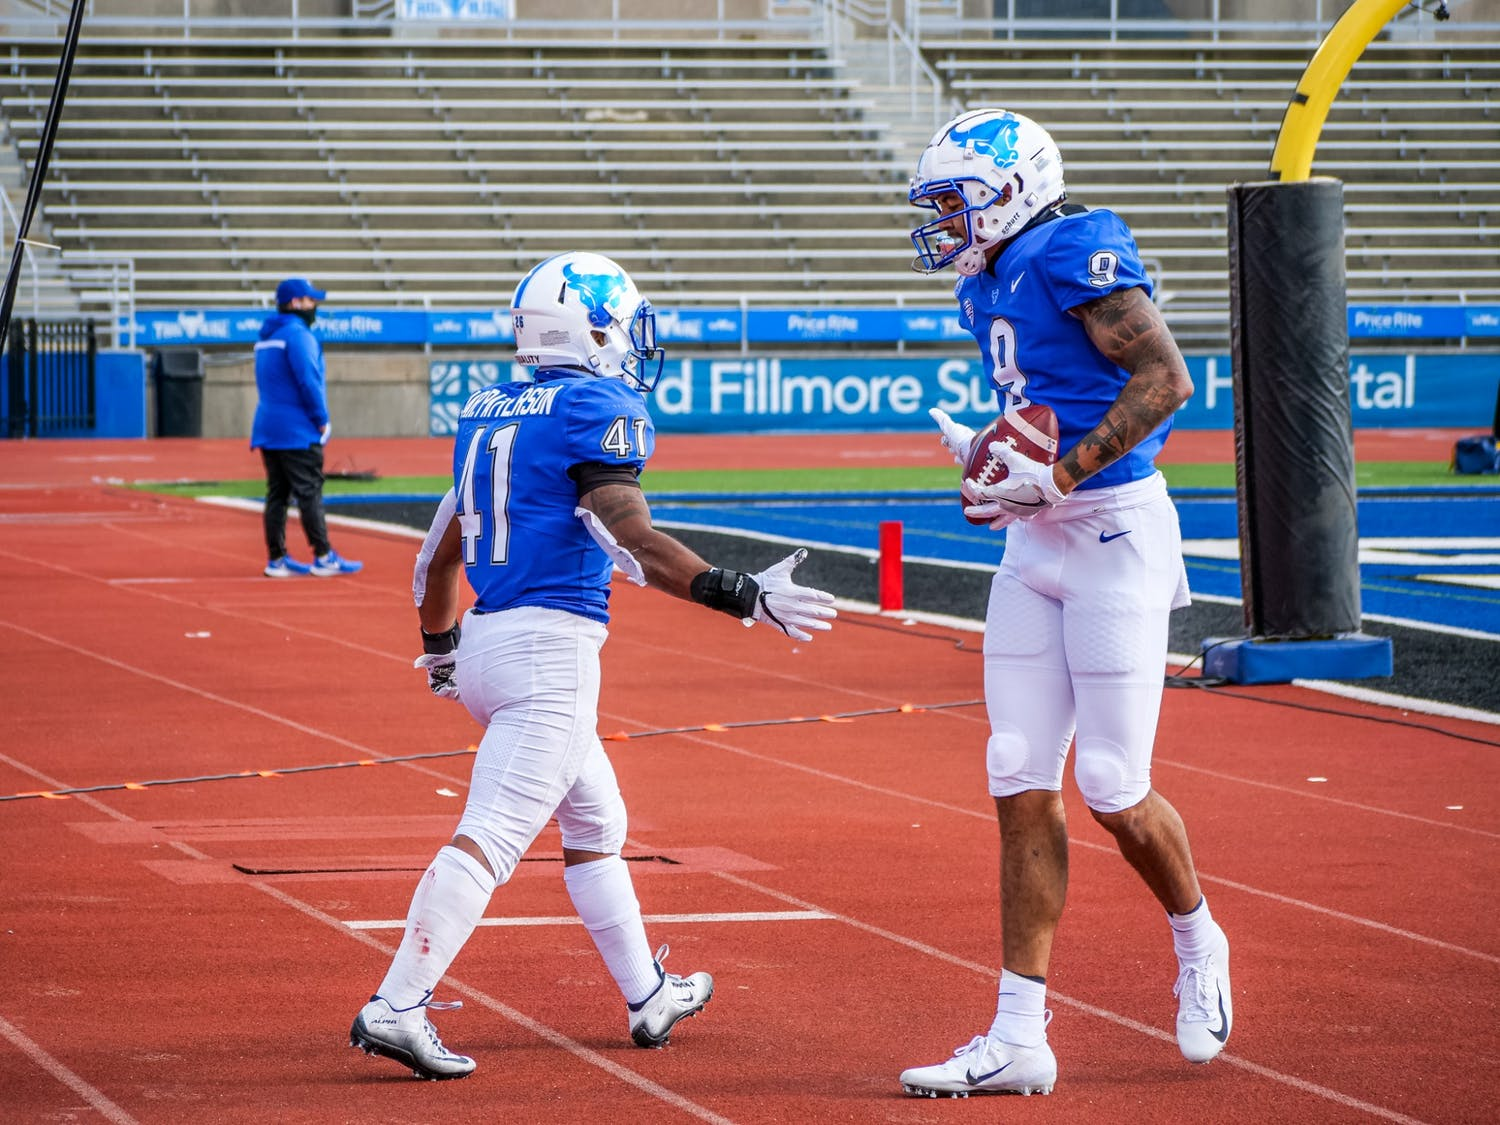 In a Nov. 28 blowout victory over Kent State, Patterson rewrote the NCAA Division I record book and thrust UB into the national spotlight.